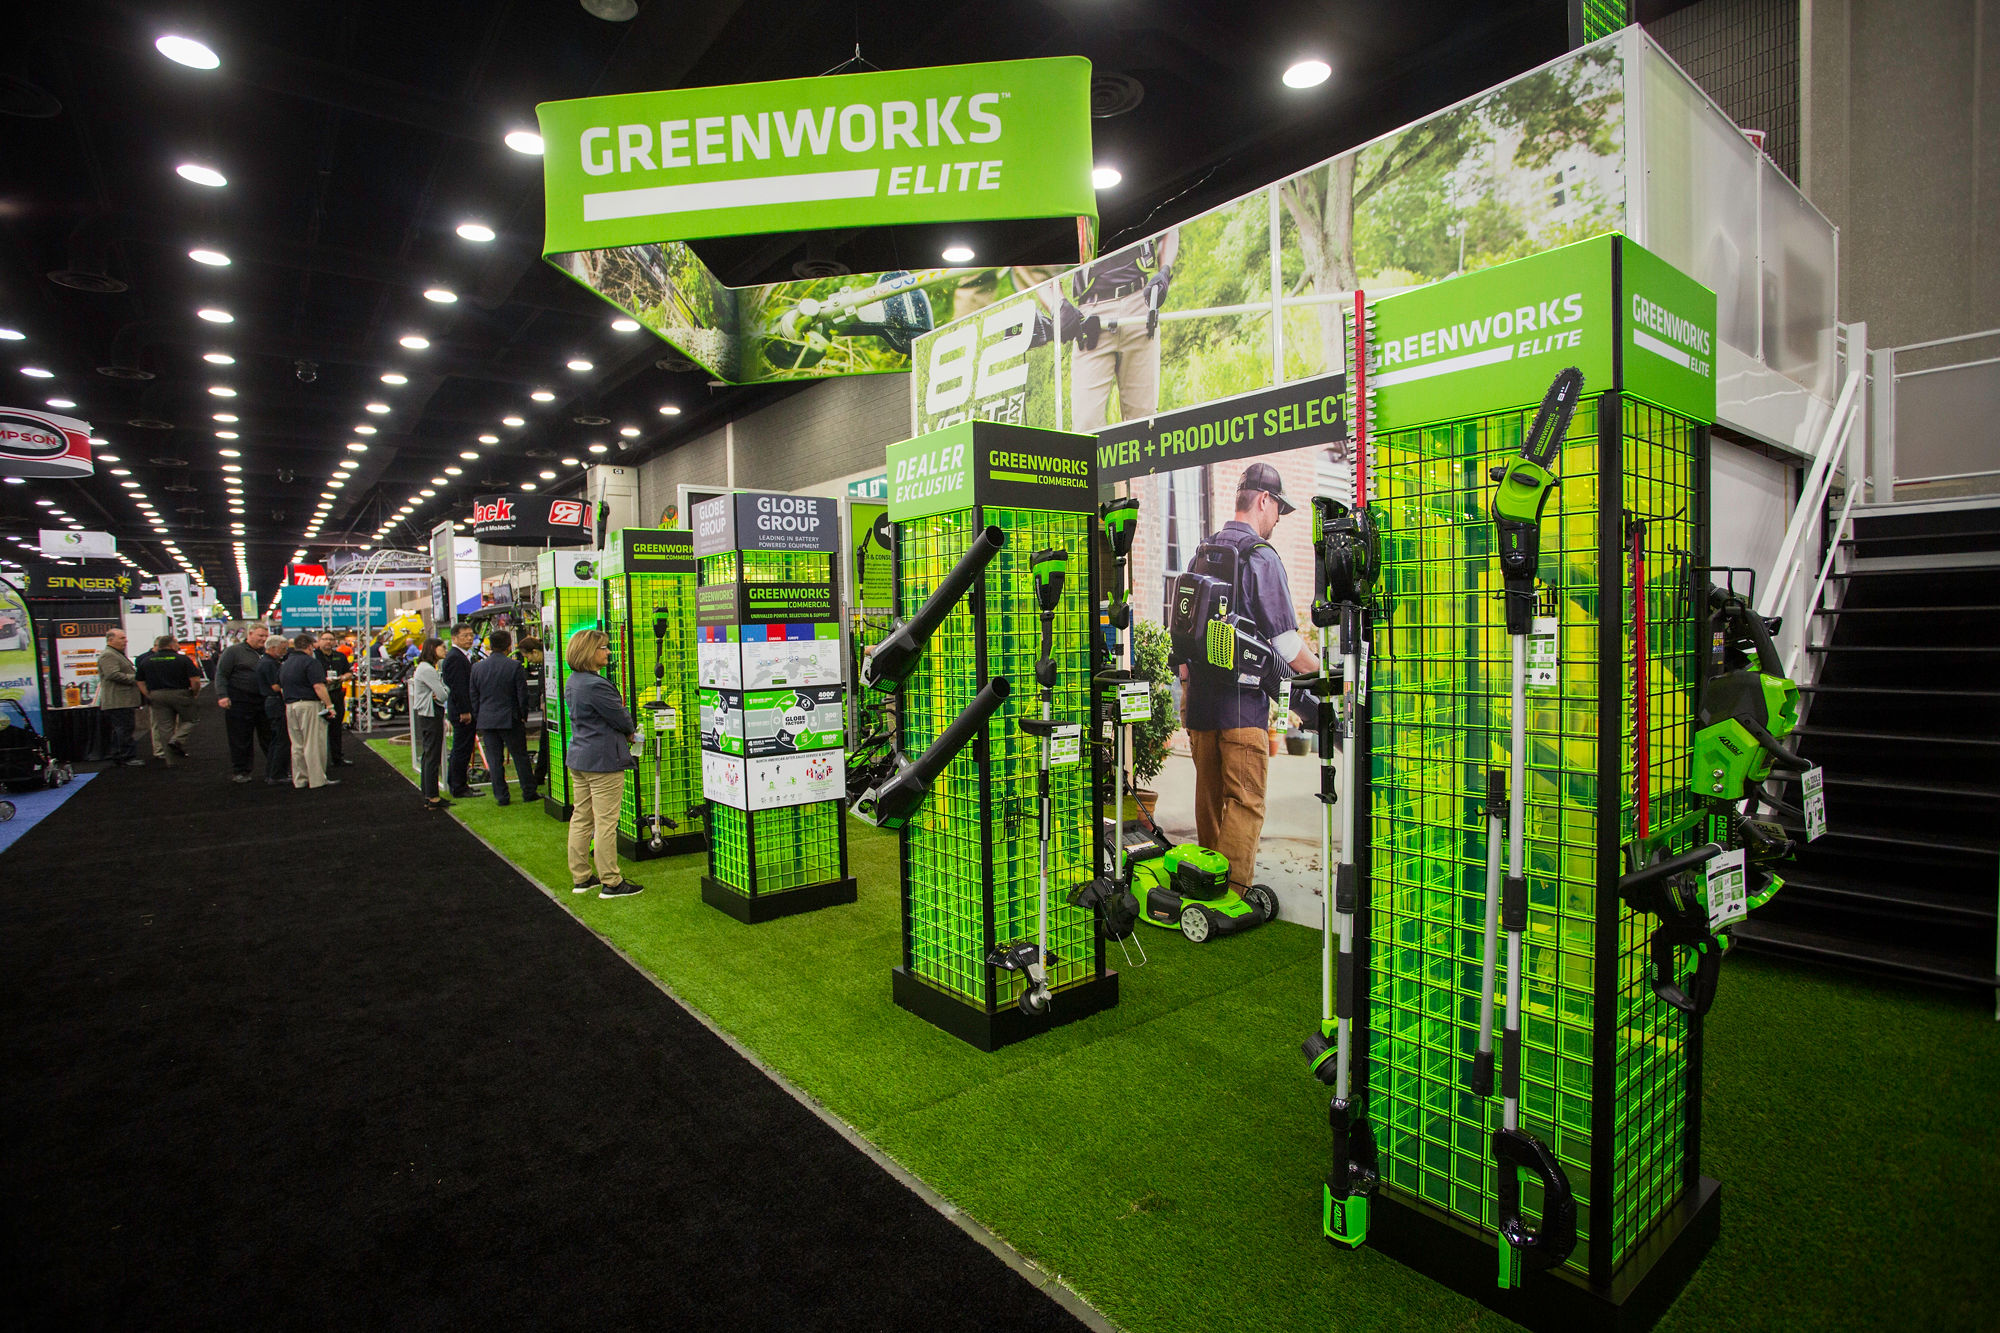 GREENWORKS INTRODUCES FLEET OF LITHIUM-ION-POWERED OUTDOOR